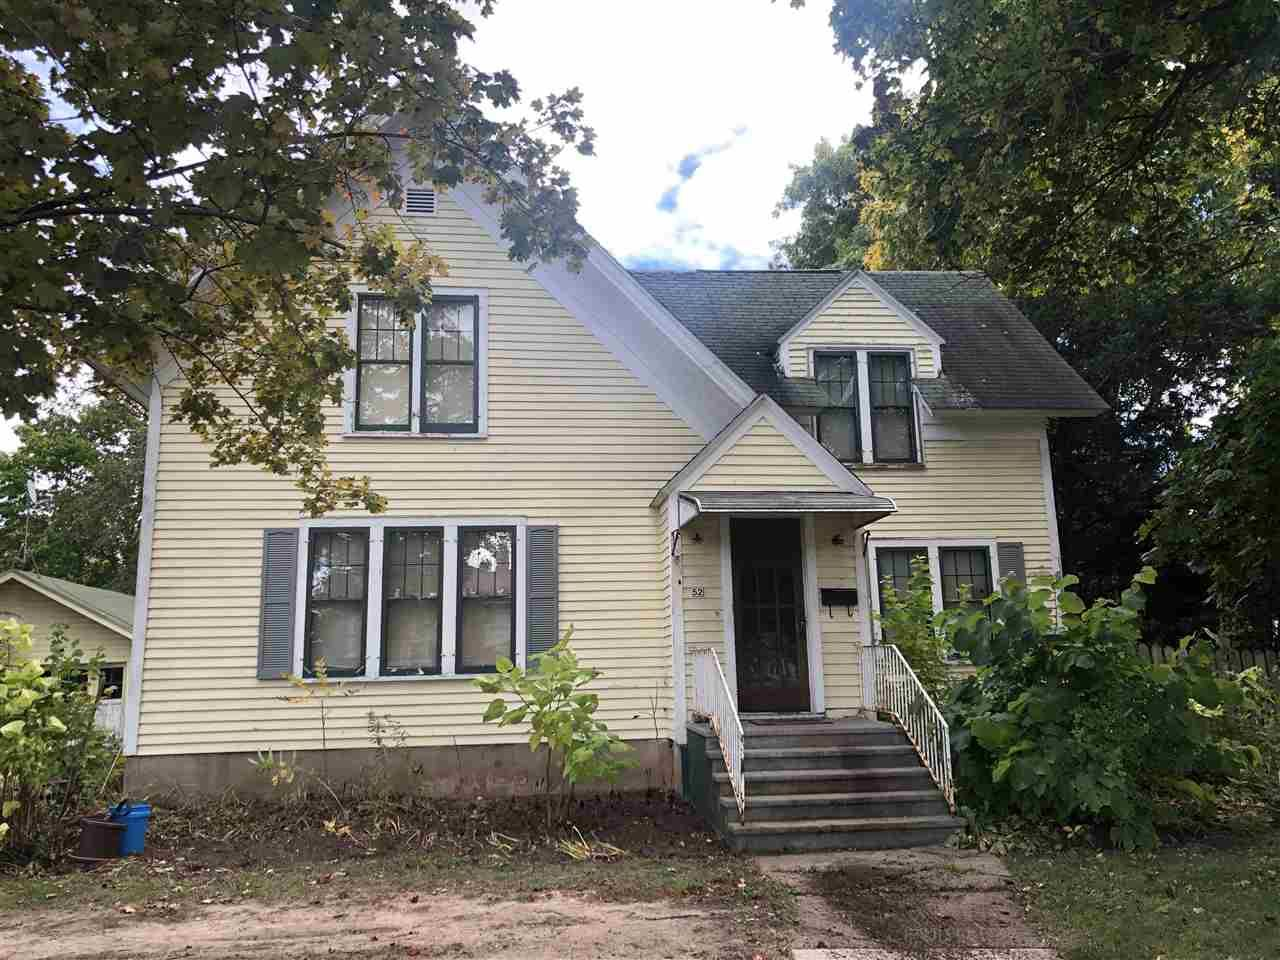 52 N MAIN Street, Clintonville, WI 54929 - MLS#: 50230574